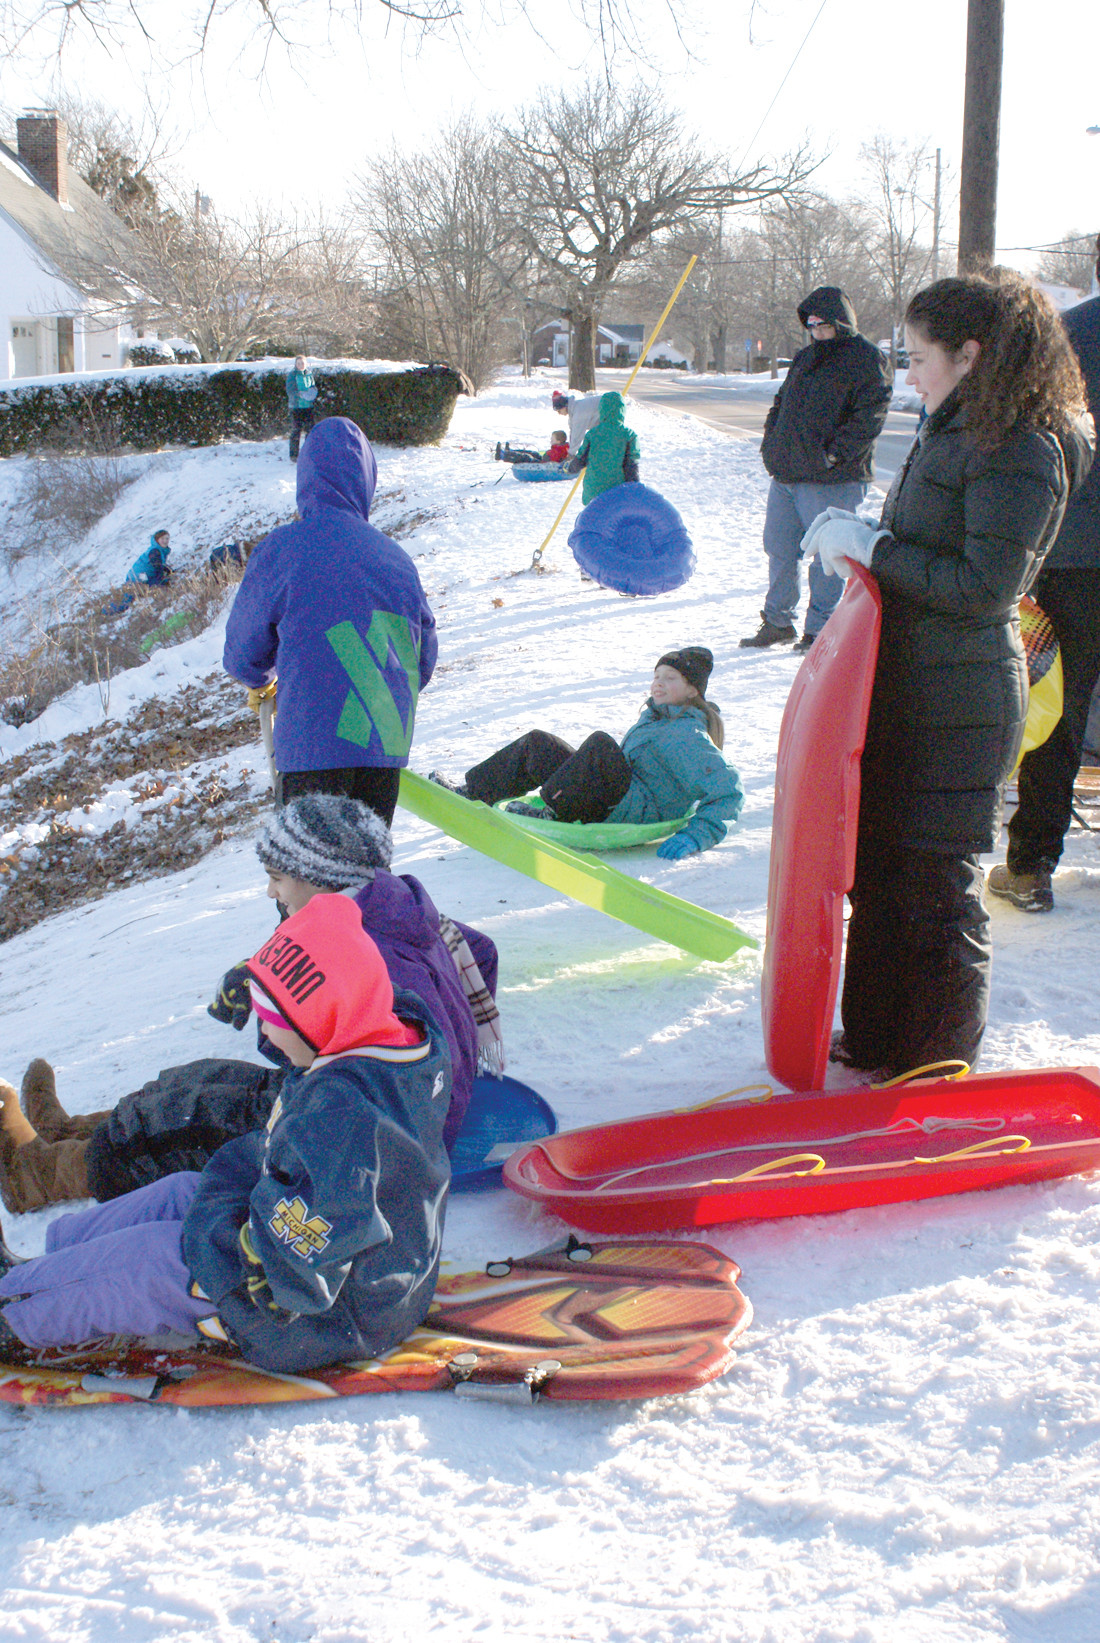 LAUNCH PAD: Children of all ages gathered on Narragansett Parkway in Warwick to take sled rides down the hill.